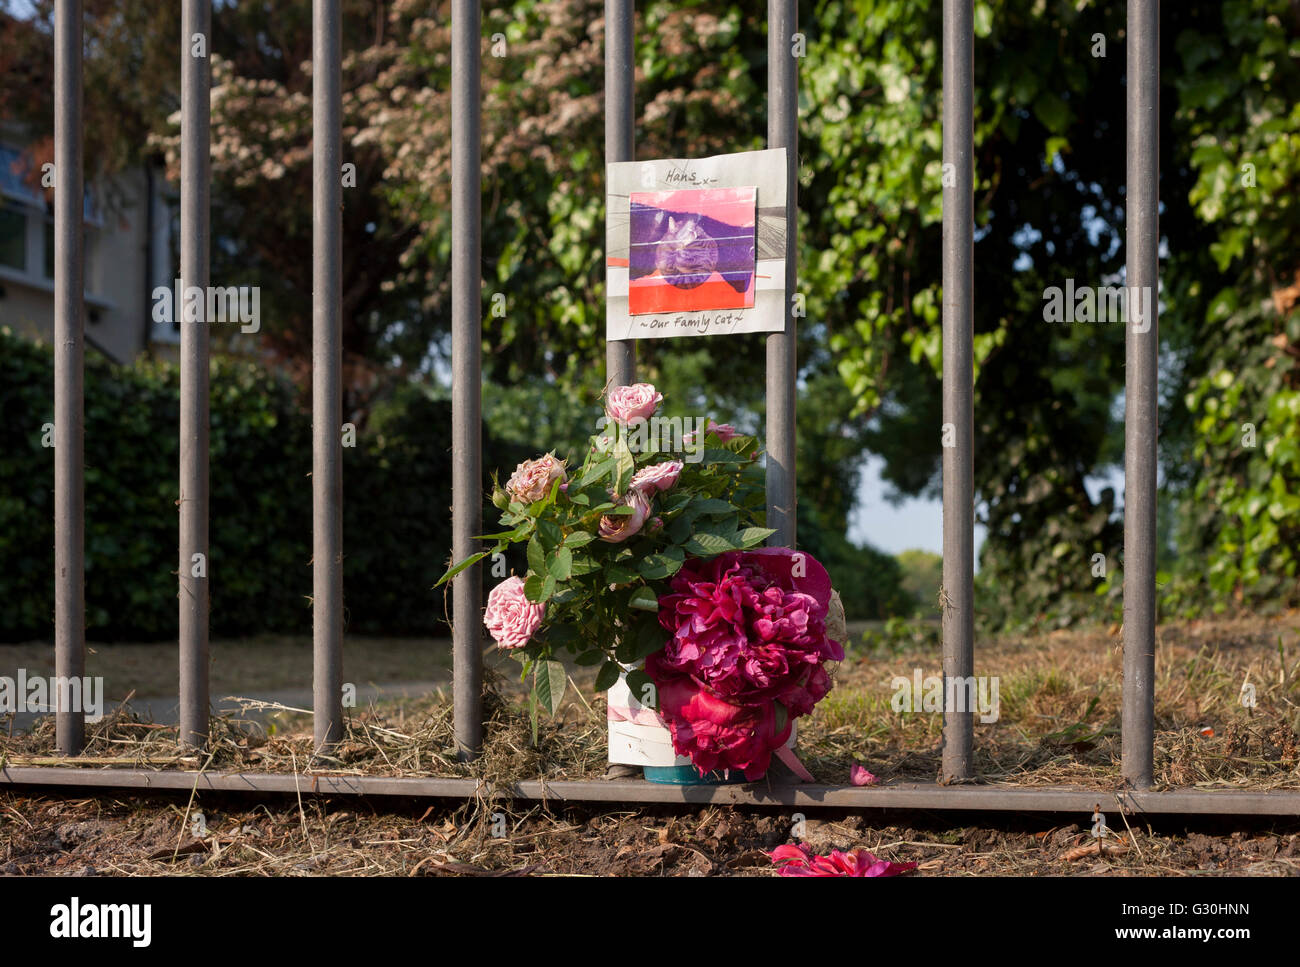 A memorial on park railings for a local cat, killed by a collision with a car on Herne Hill, south London borough - Stock Image